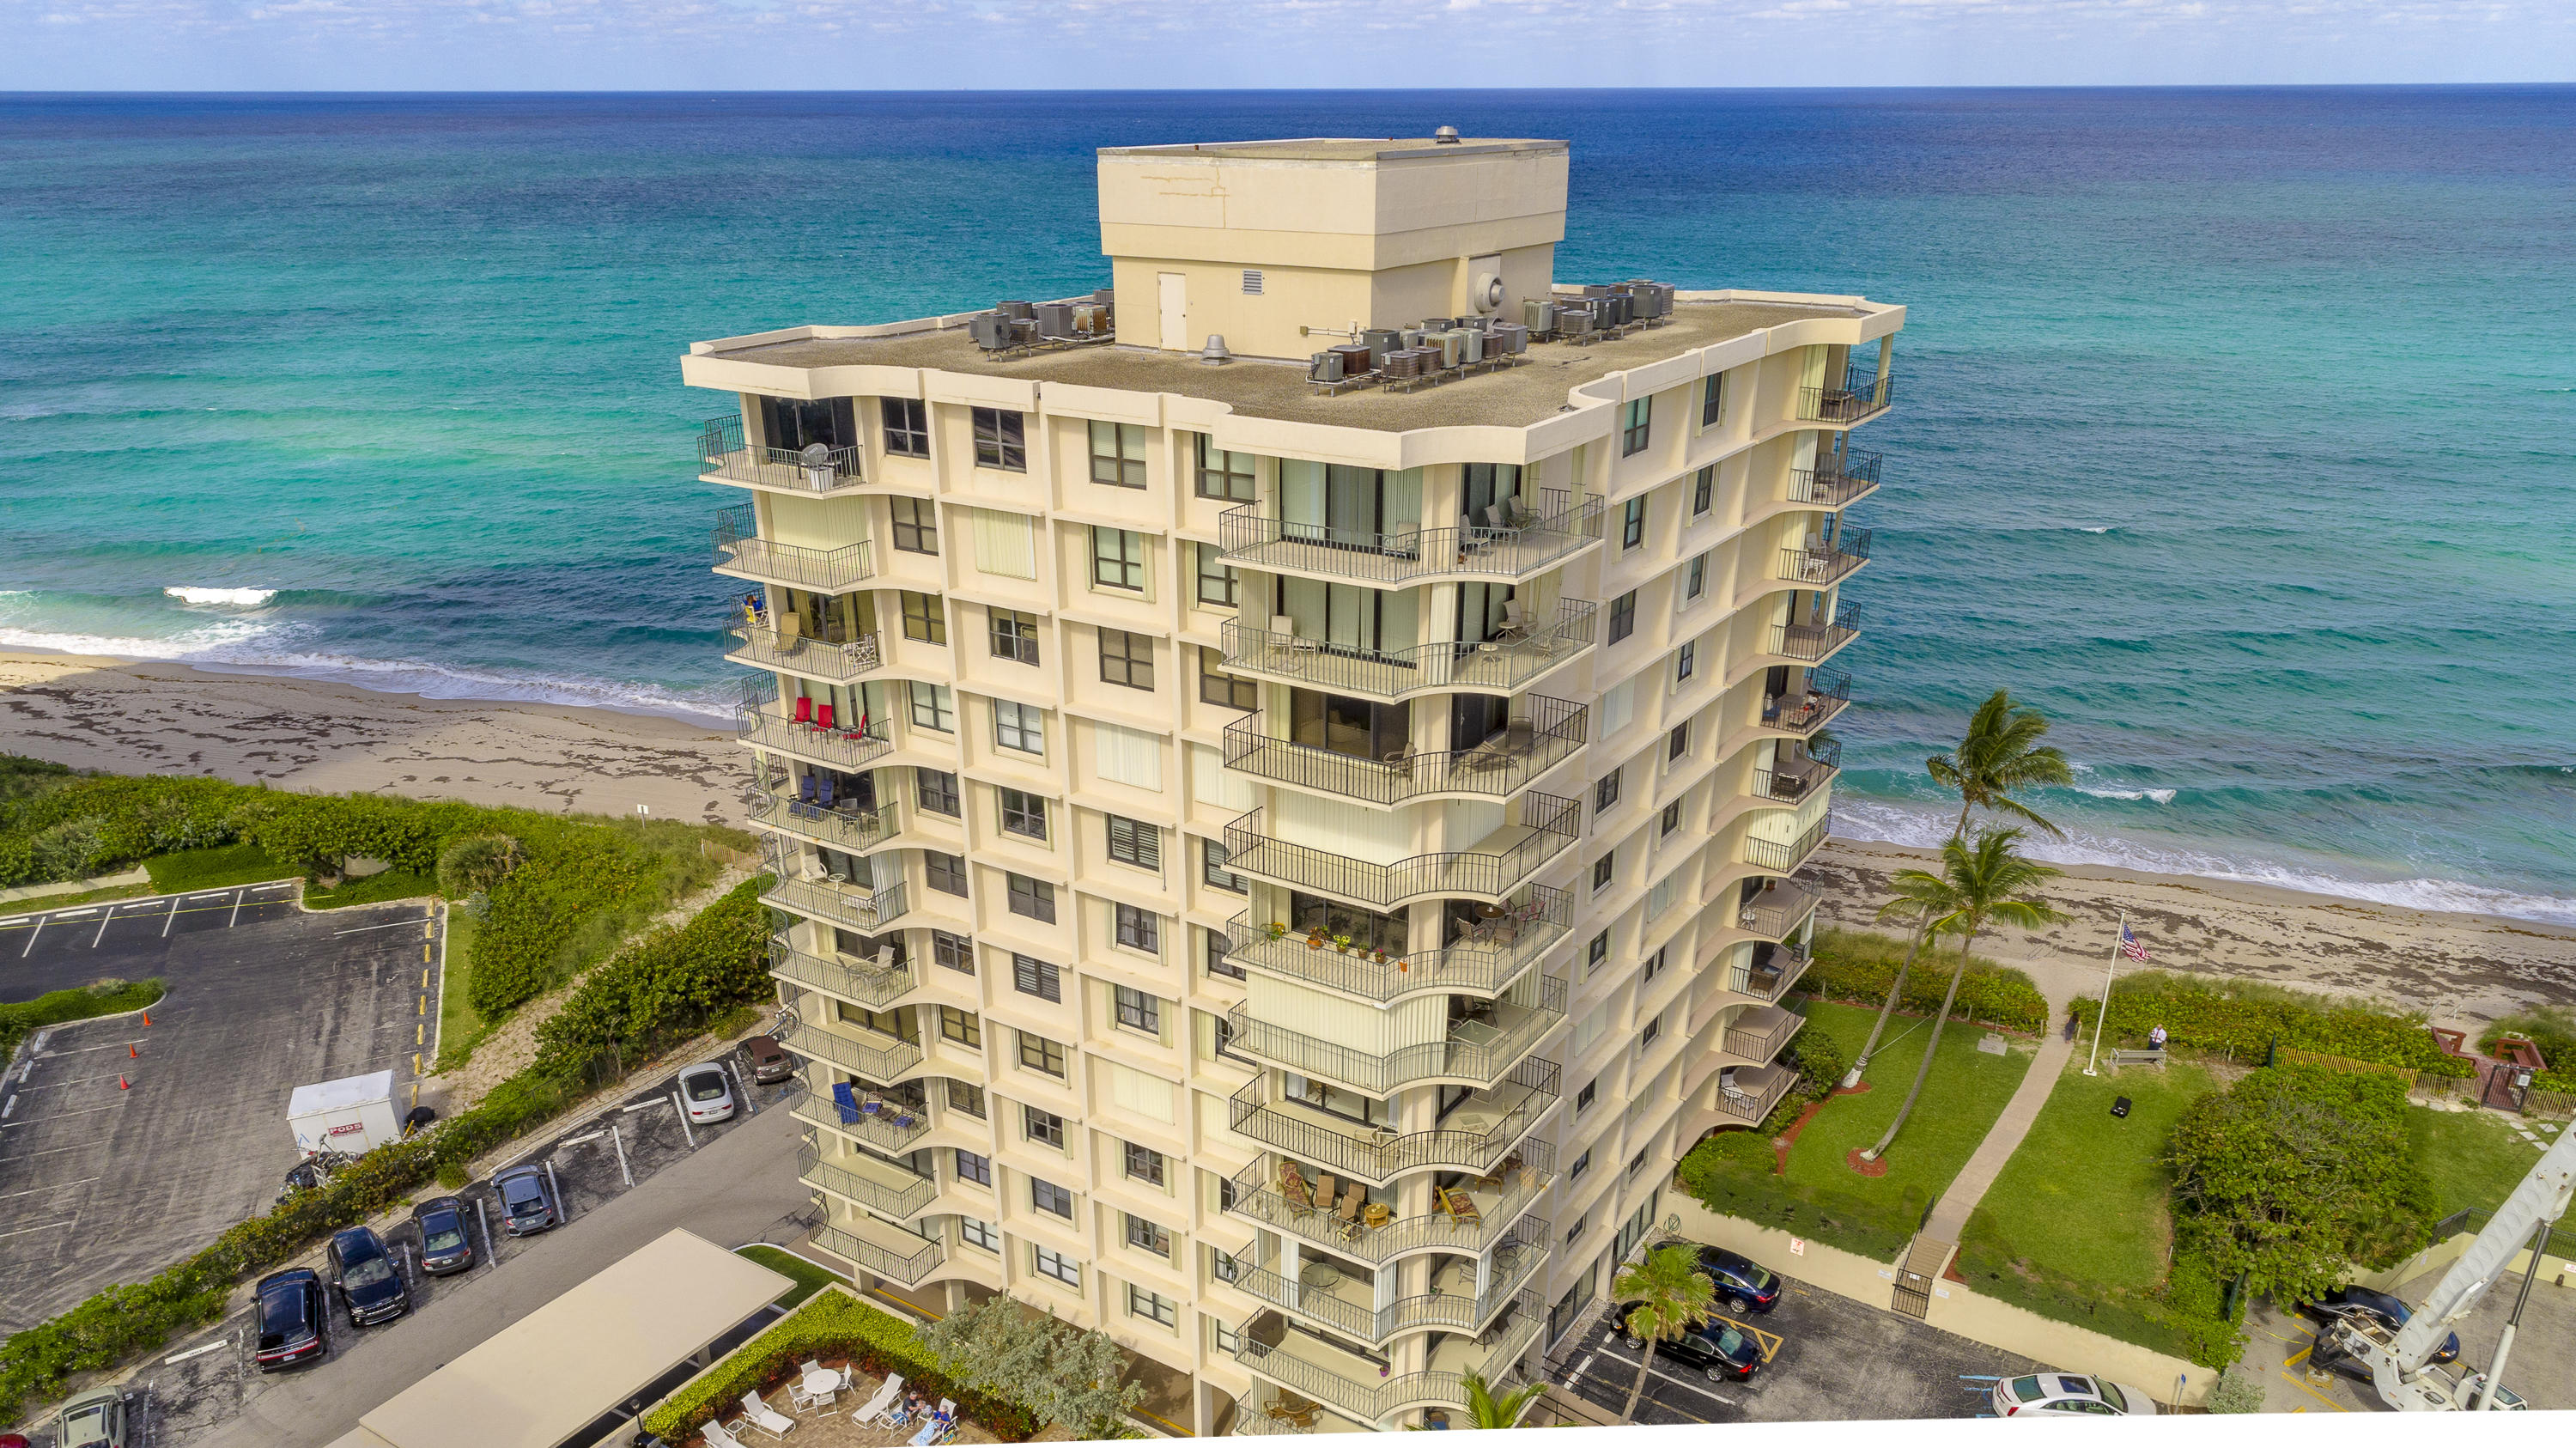 This beautiful updated light and bright condo is located at the desirable northern end of Singer Island. Enjoy views of pool, intracoastal and ocean from your wrap-around balcony. Dunes Towers amenities include, private beach access, heated pool, gym, clubhouse, bike storage, and pool area includes gas grills for you to enjoy. Only 4 units per floor! Come see what island living is all about!